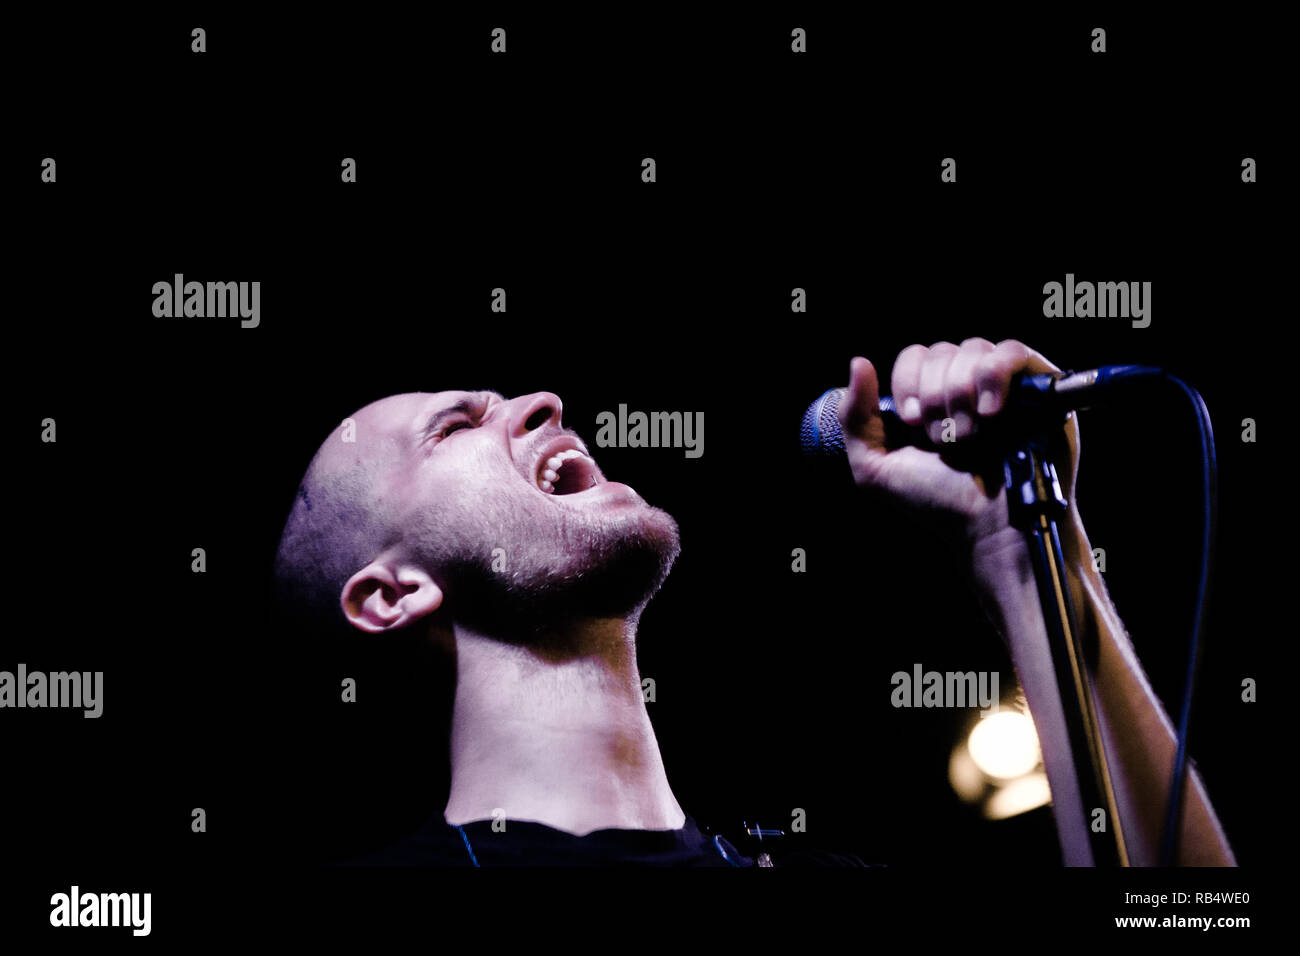 Artist Names High Resolution Stock Photography And Images Alamy